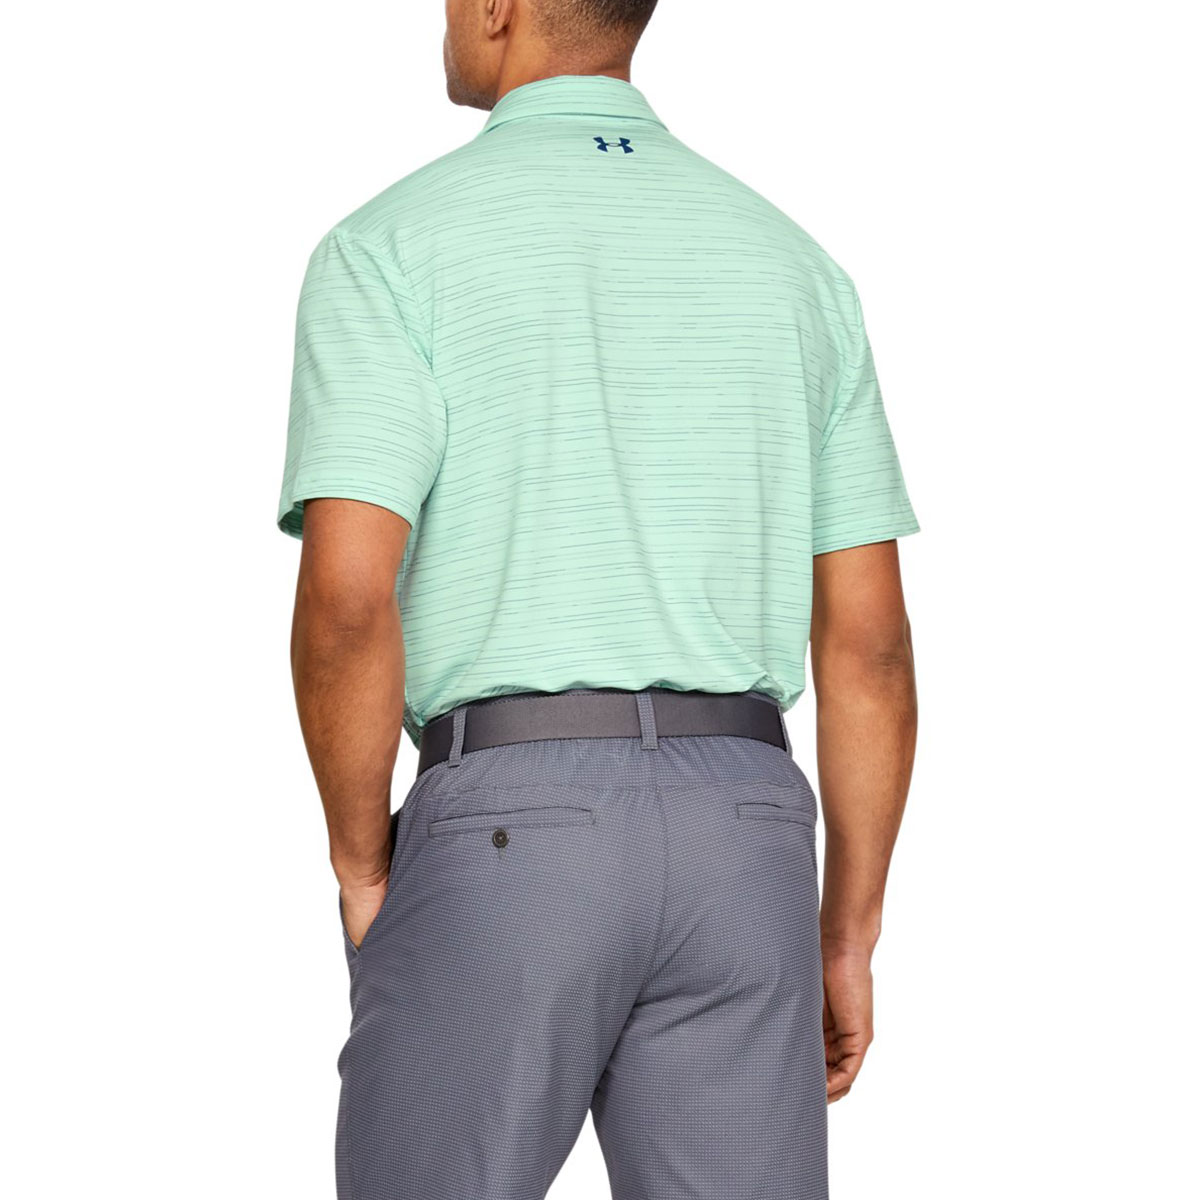 Under-Armour-Mens-2019-Playoff-Polo-2-0-Breathable-Light-Stretch-Polo-Shirt thumbnail 19